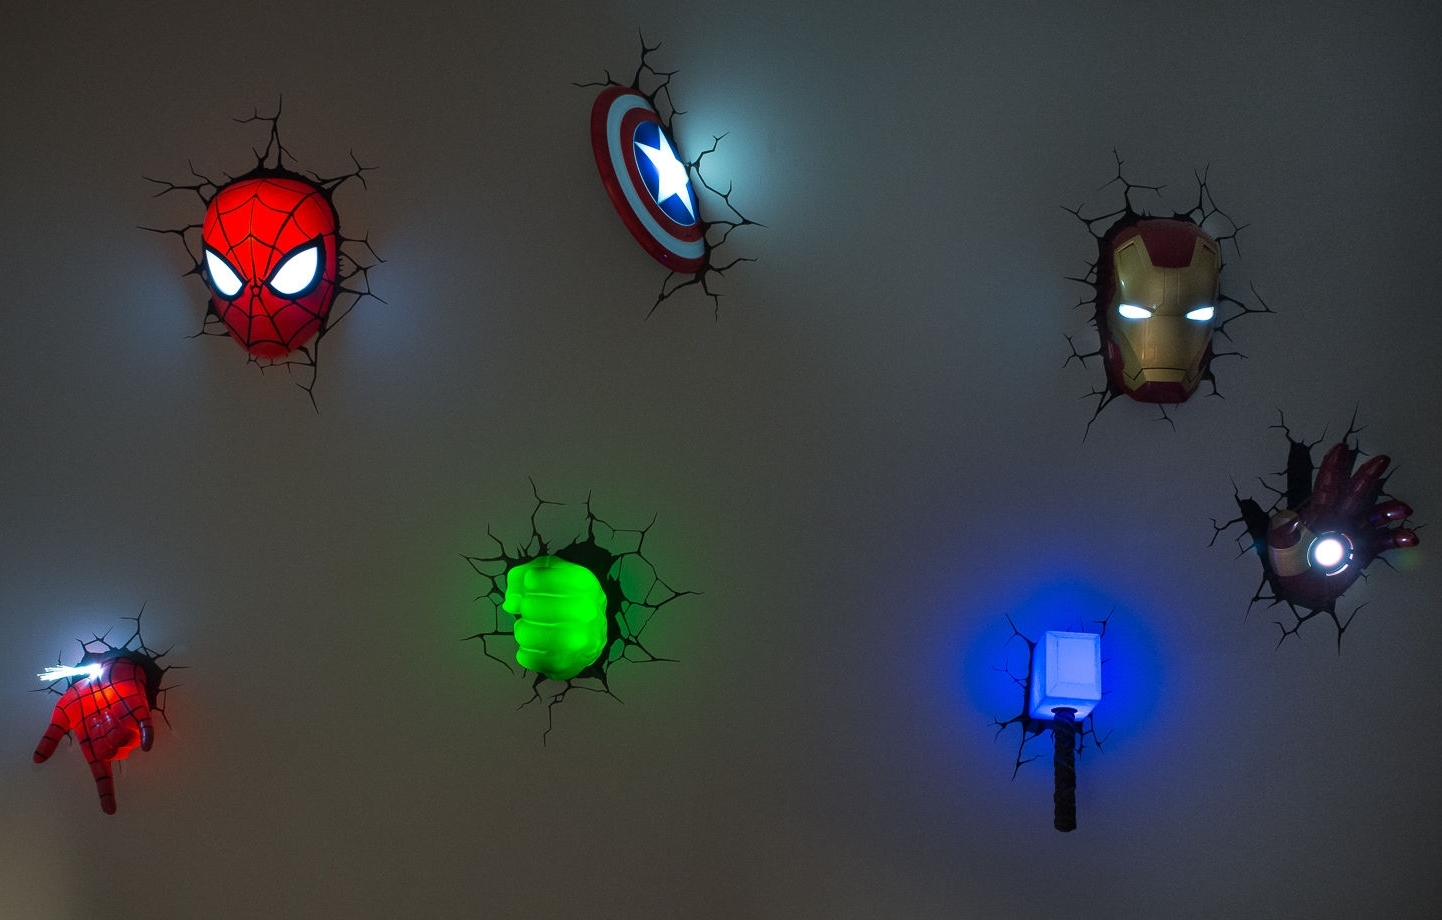 Avengers 3D Wall Art Night Lights Bundle Iron Man Hand Lot Of 7 Throughout Famous 3D Wall Art Night Light Spiderman Hand (View 4 of 15)